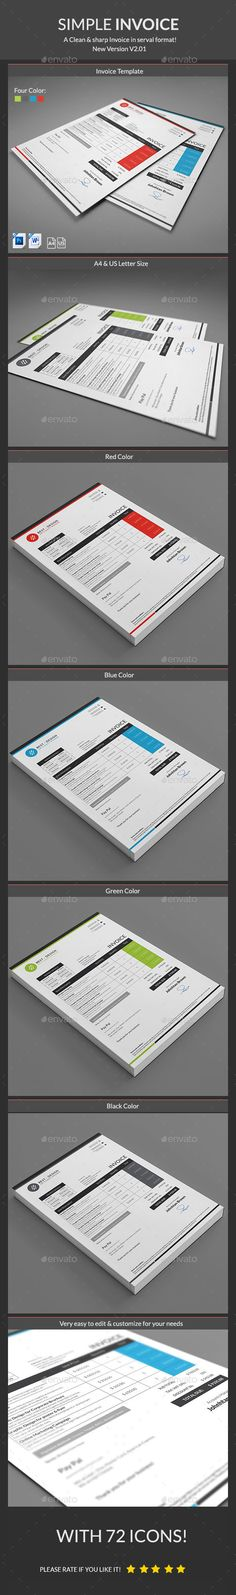 Clean Business Invoice Template Business proposal - simple invoice